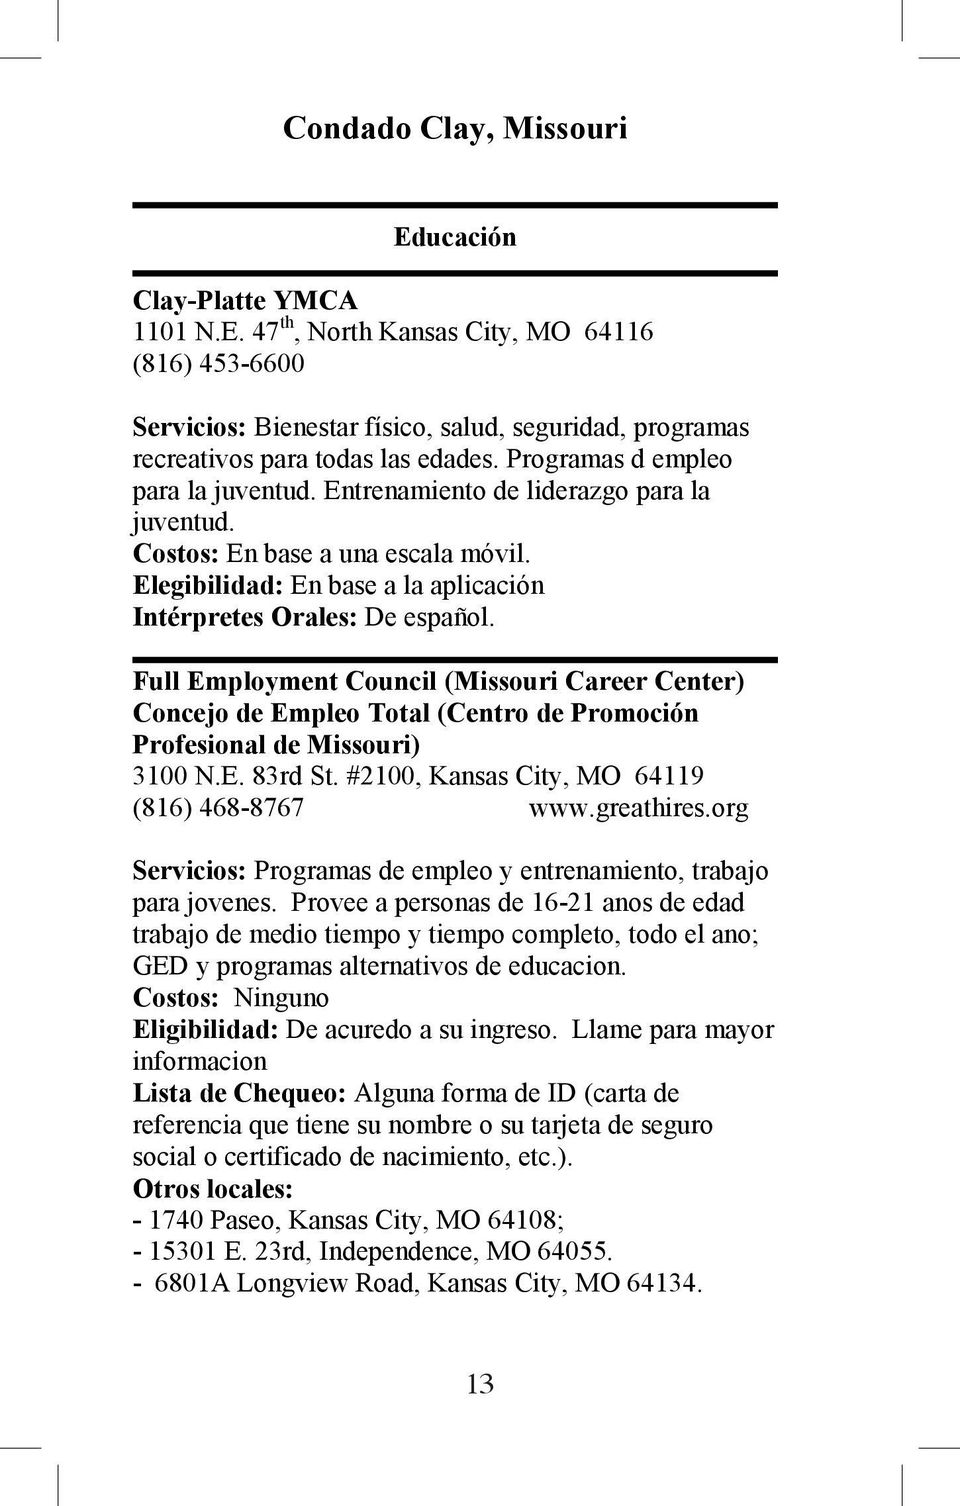 Full Employment Council (Missouri Career Center) Concejo de Empleo Total (Centro de Promoción Profesional de Missouri) 3100 N.E. 83rd St. #2100, Kansas City, MO 64119 (816) 468-8767 www.greathires.